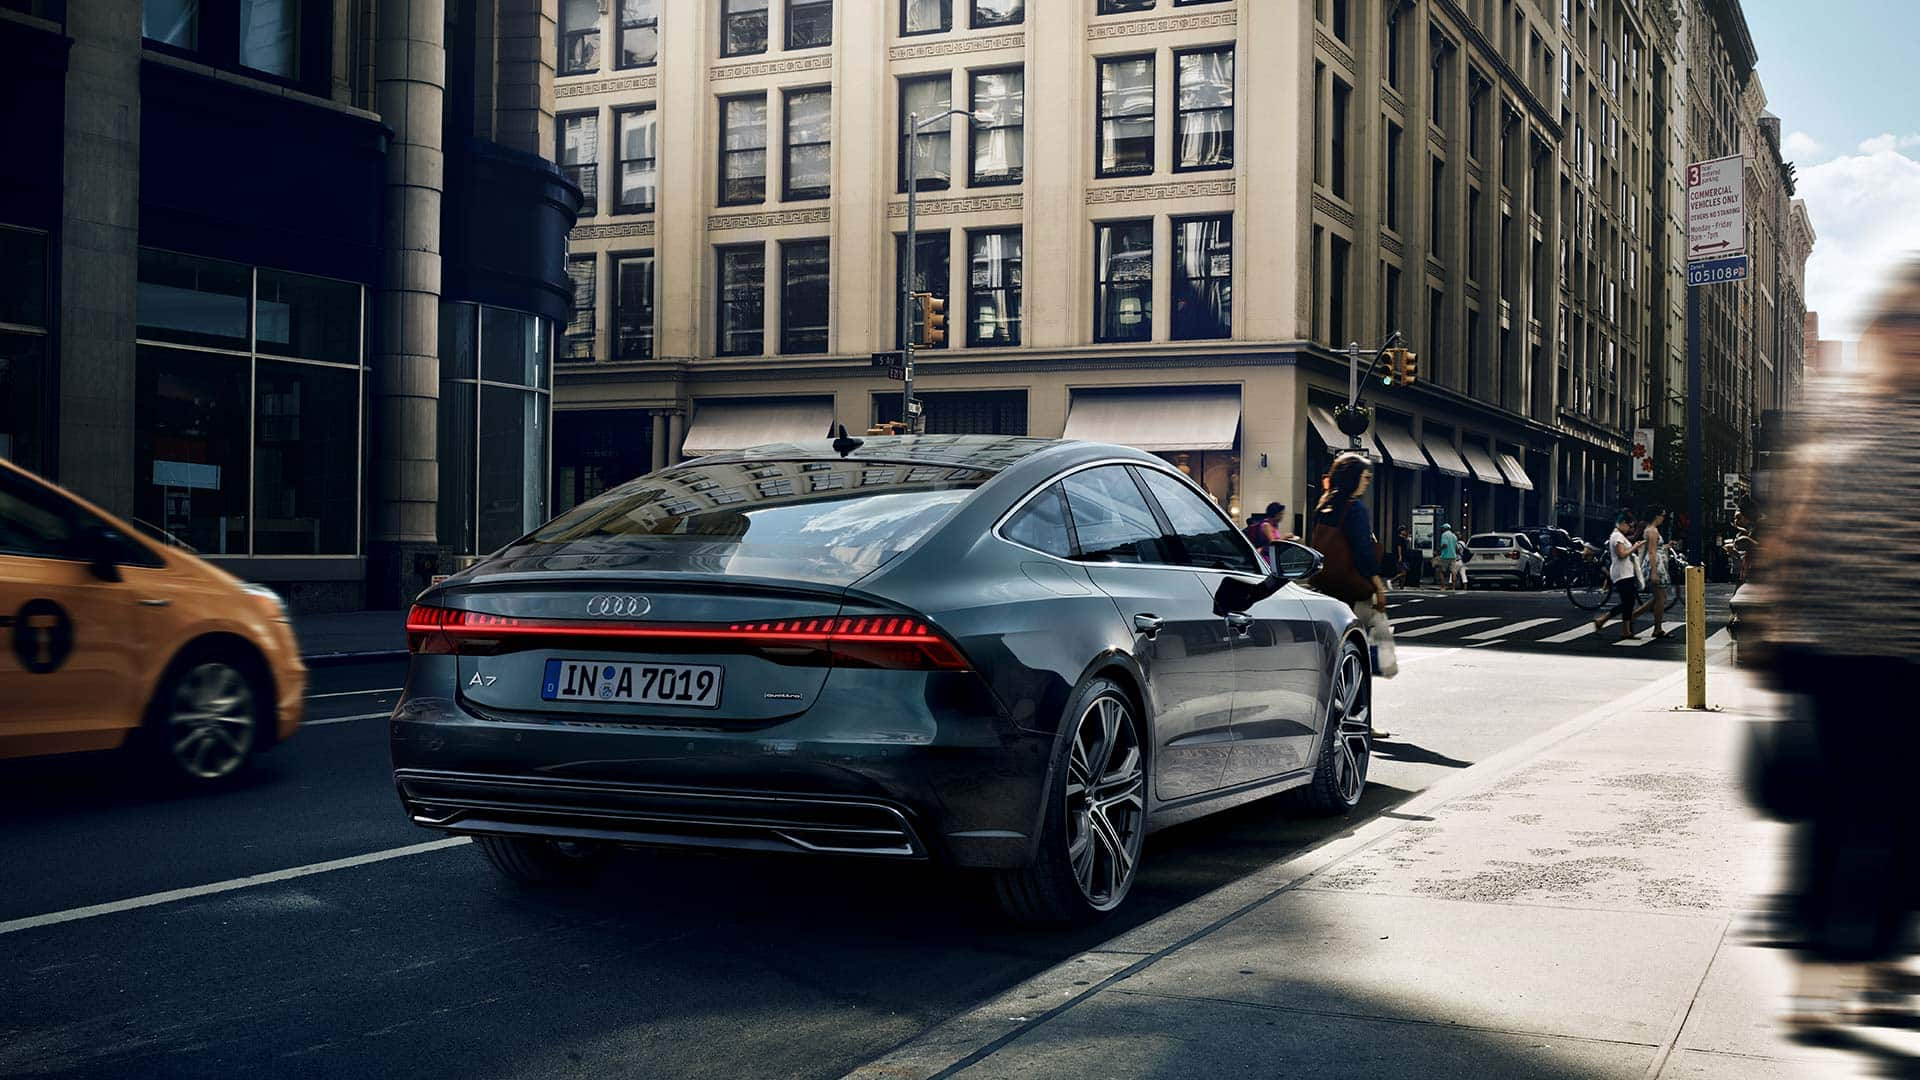 The new A7 Sportback gt Audi Ireland